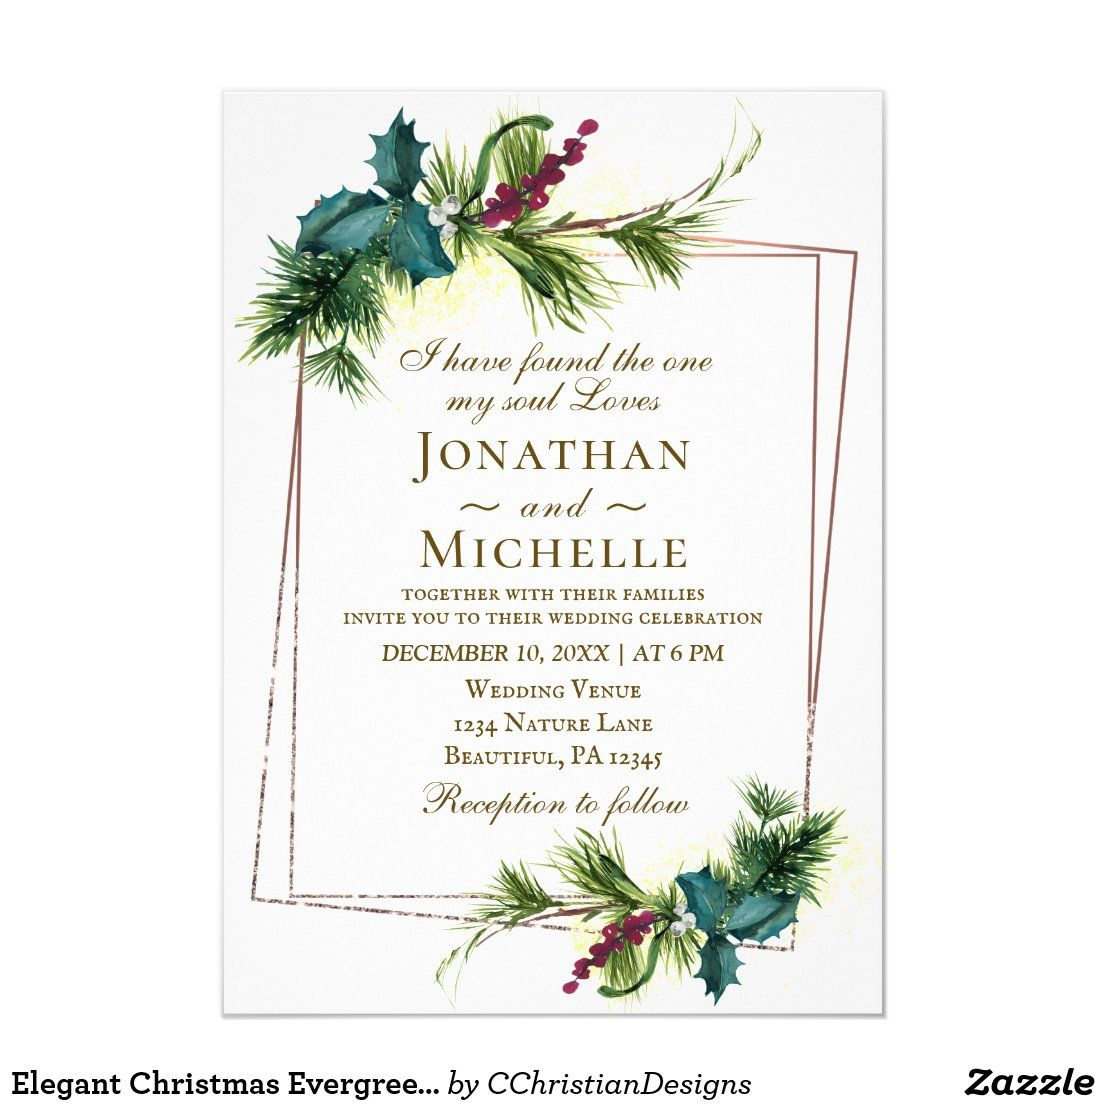 Elegant Christmas Evergreen Holly Bible Wedding Invitation